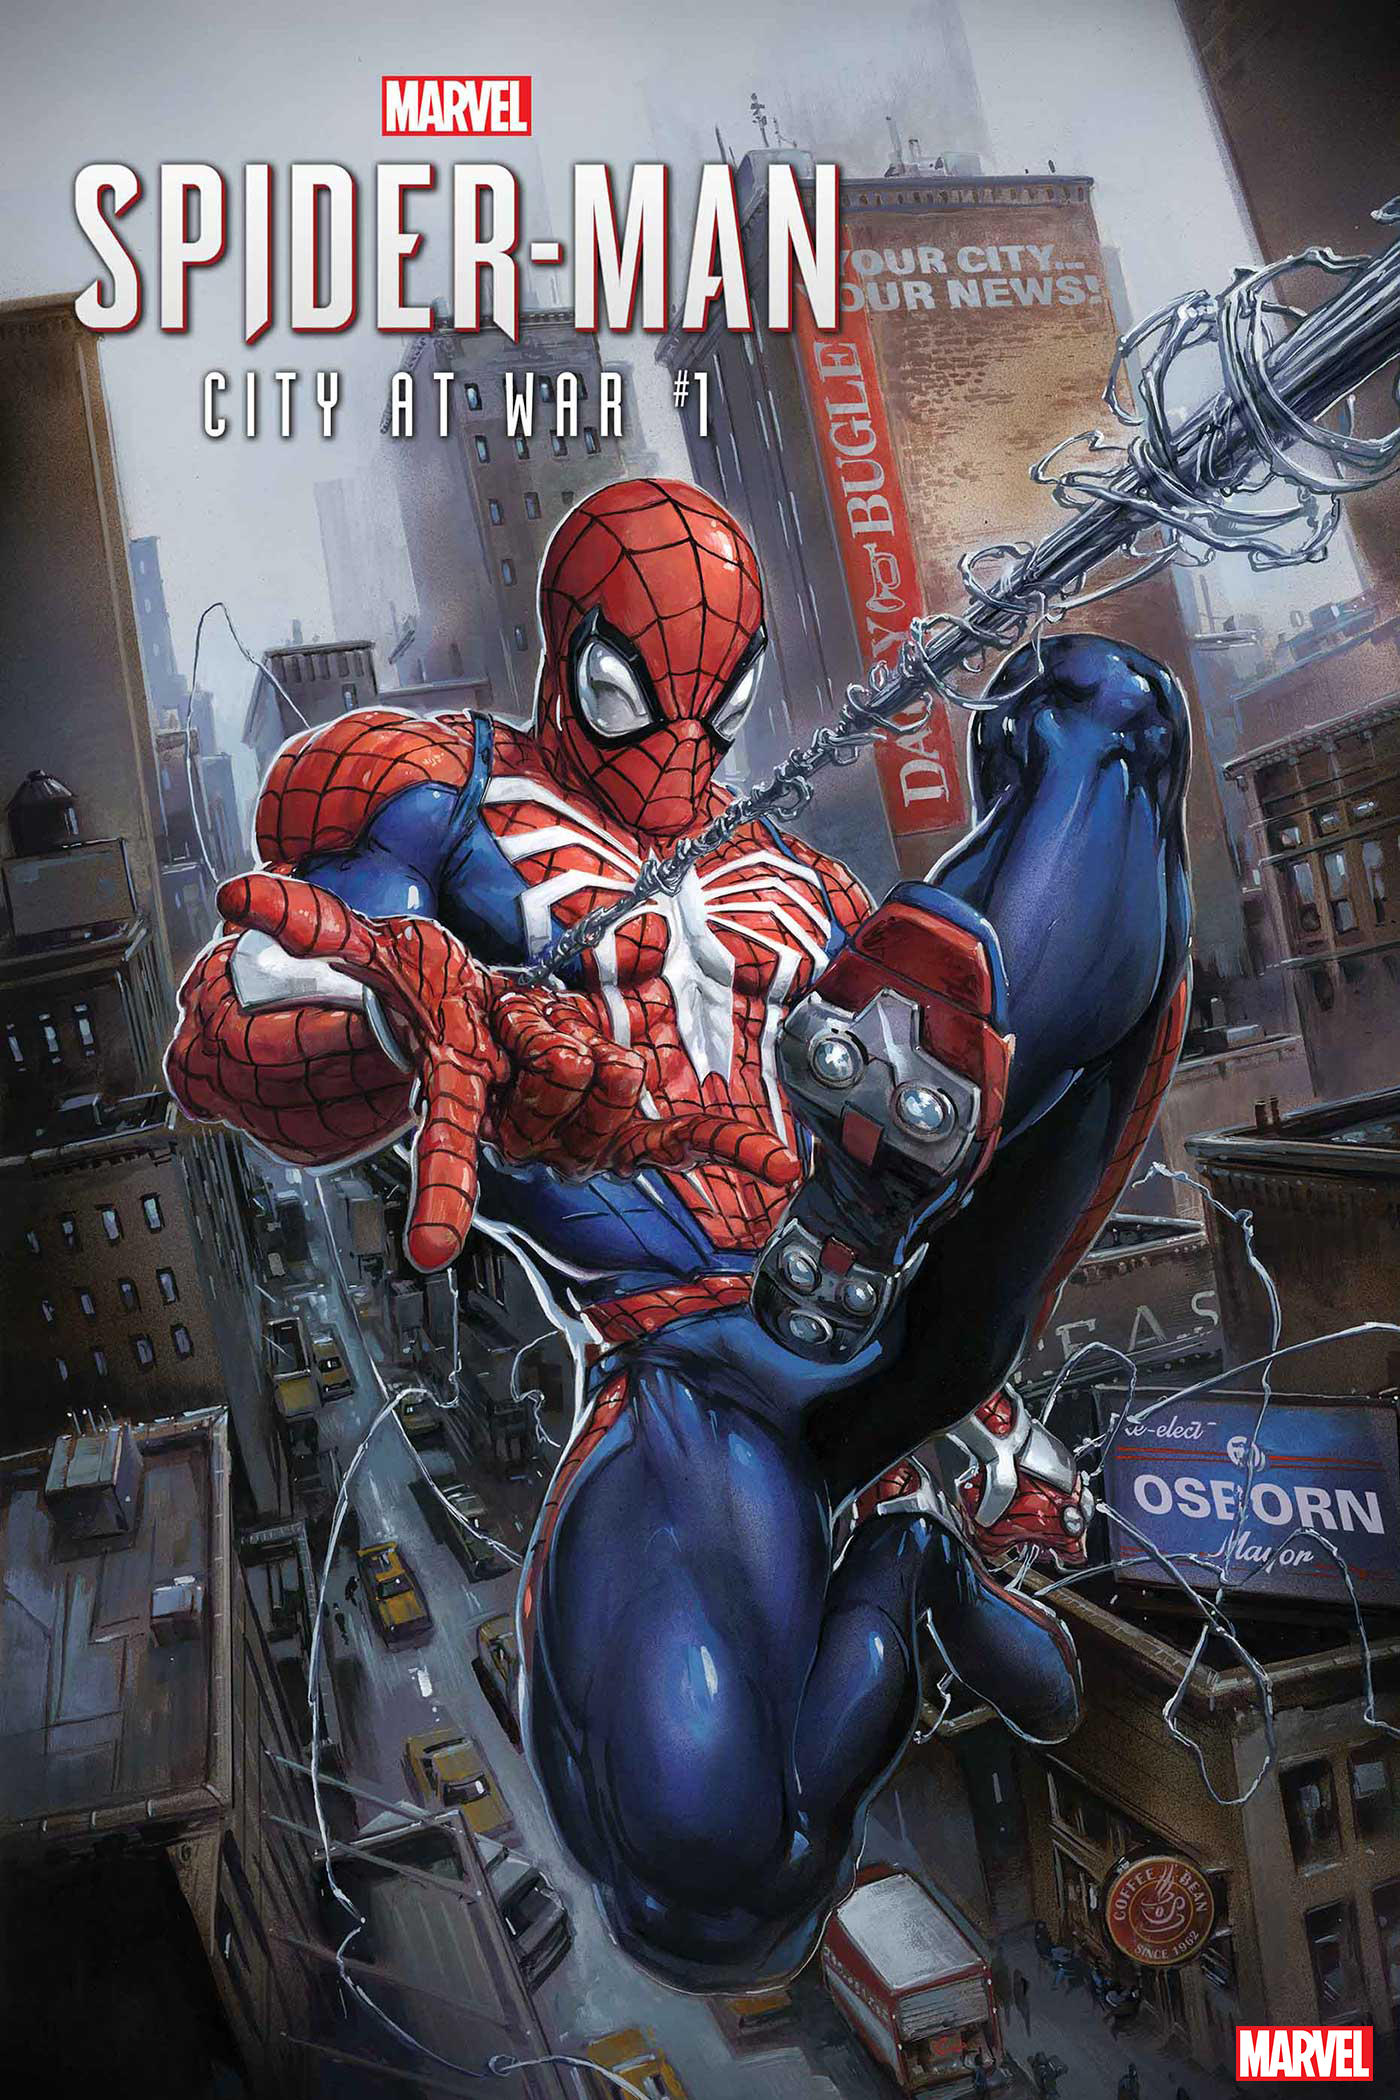 Marvel S Spider Man Is Getting A Six Issue Comic Series In